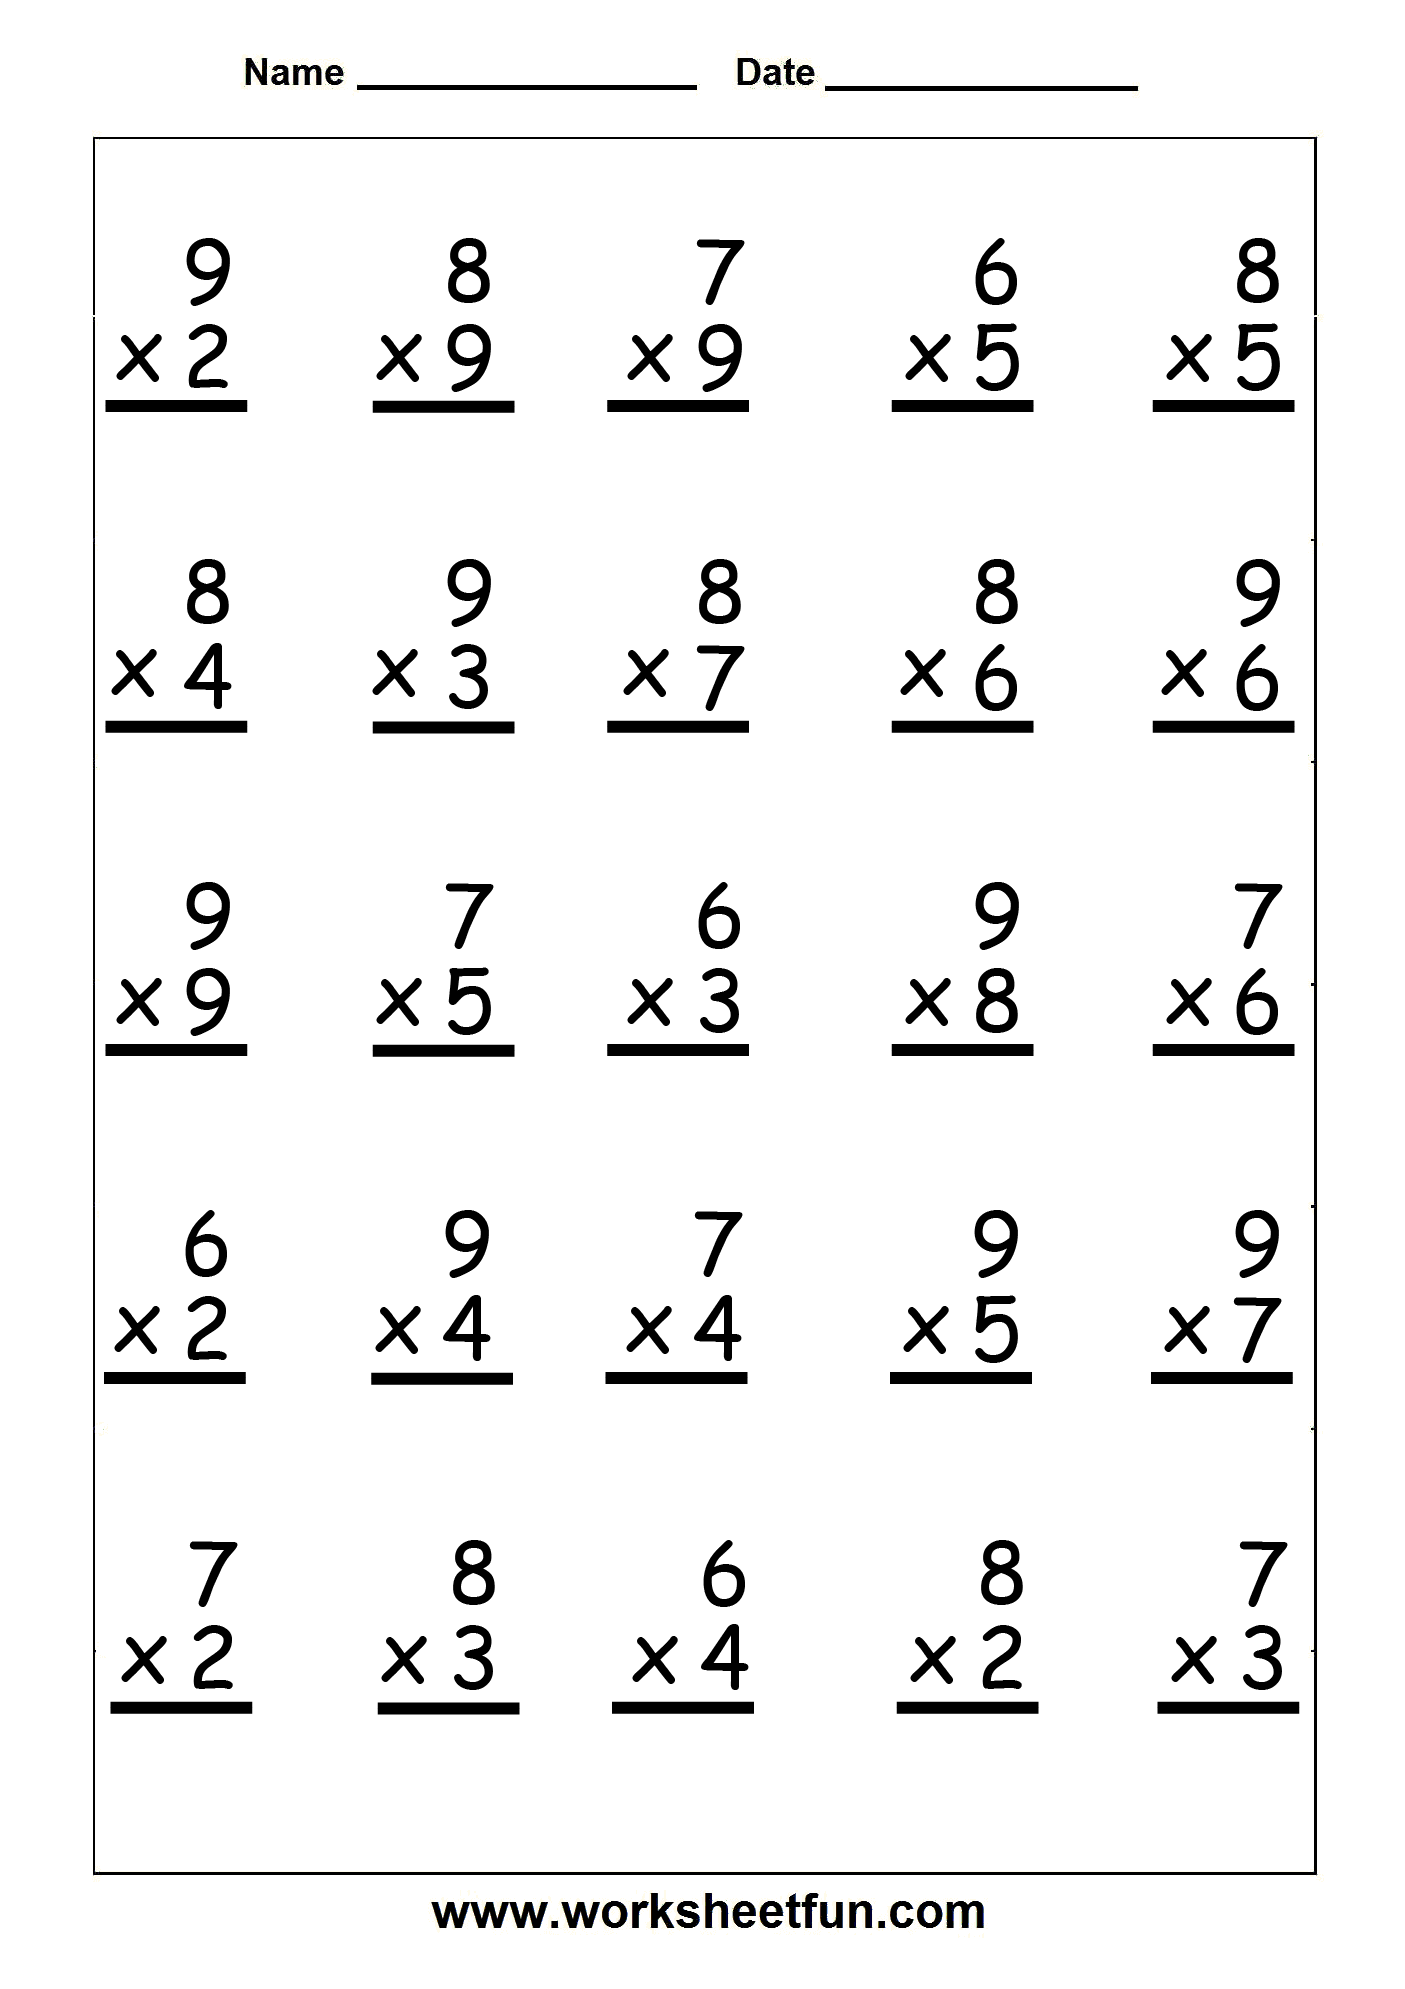 15 Best Images Of Cut And Paste Numbers 1 10 Worksheets